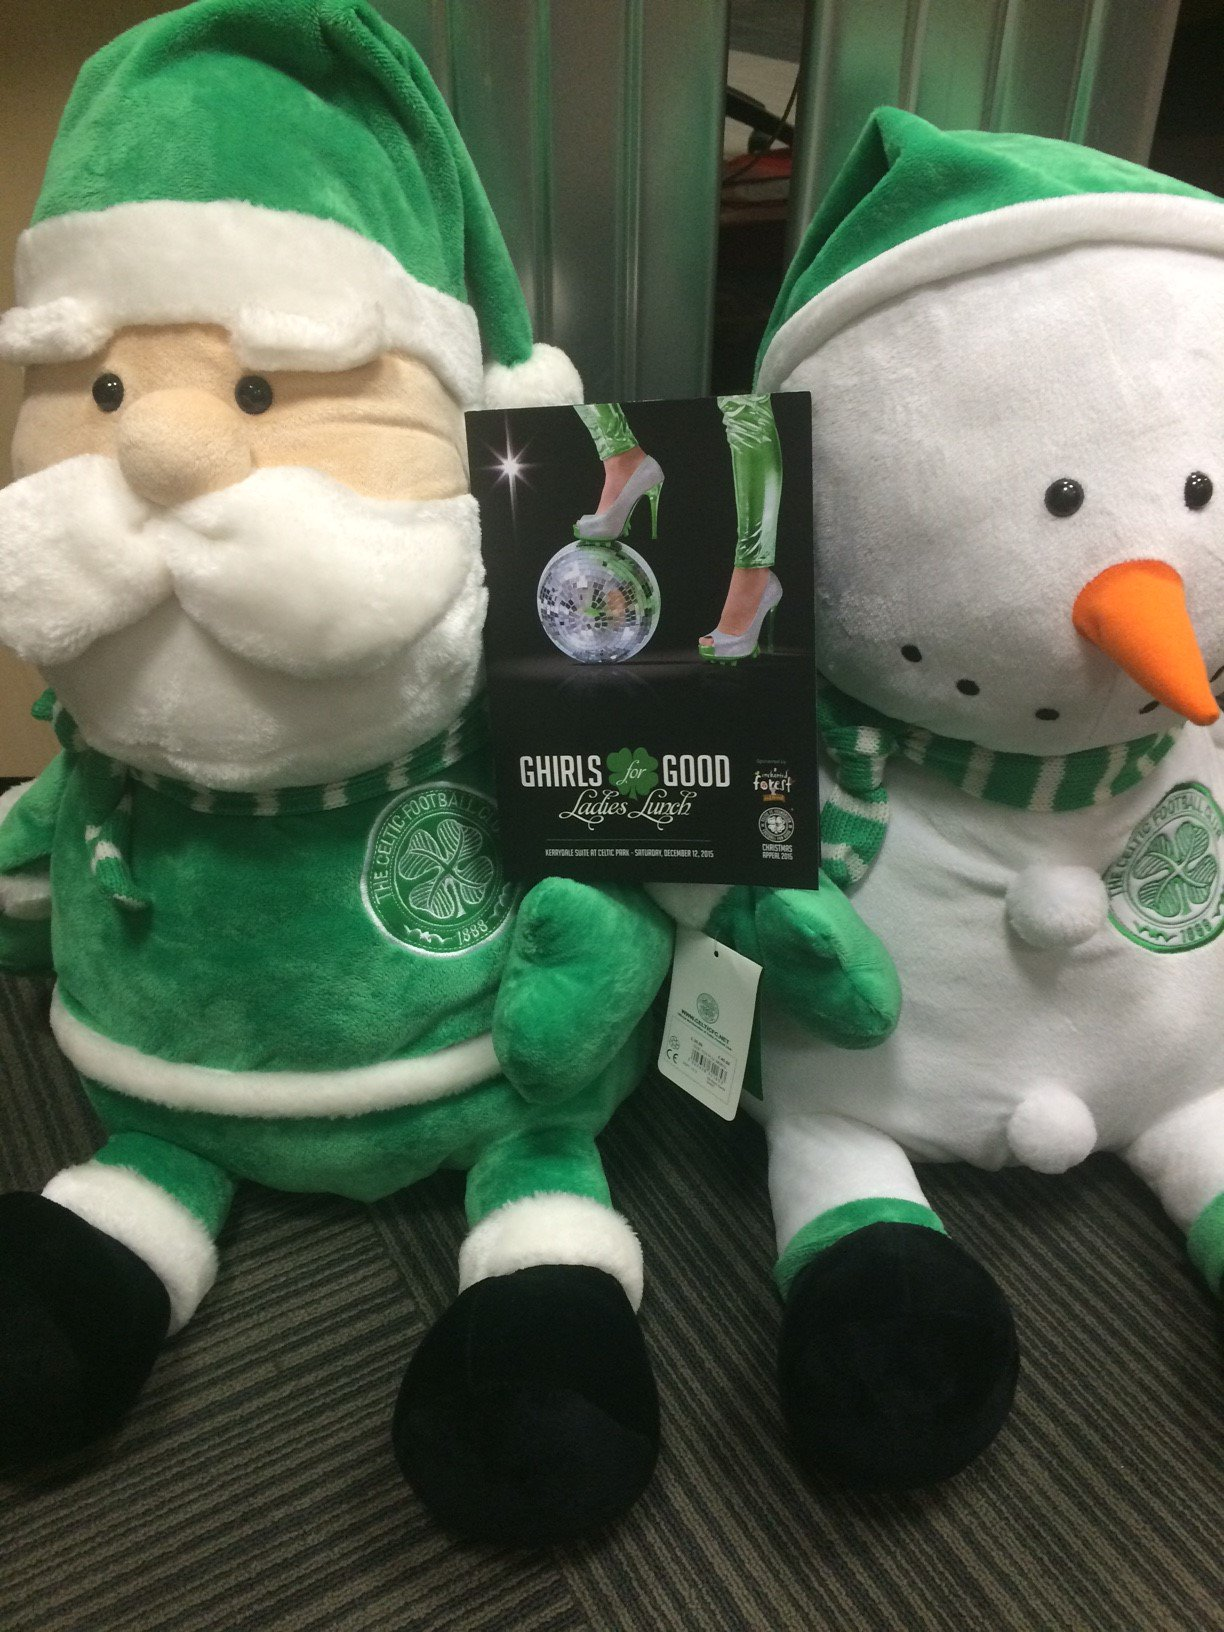 RT @FoundationCFC: We're ready for you Ghirls! Can't wait to see you all at 11.30am tomorrow. Party!!!! #ghirlsforgood https://t.co/6zCTf1G…